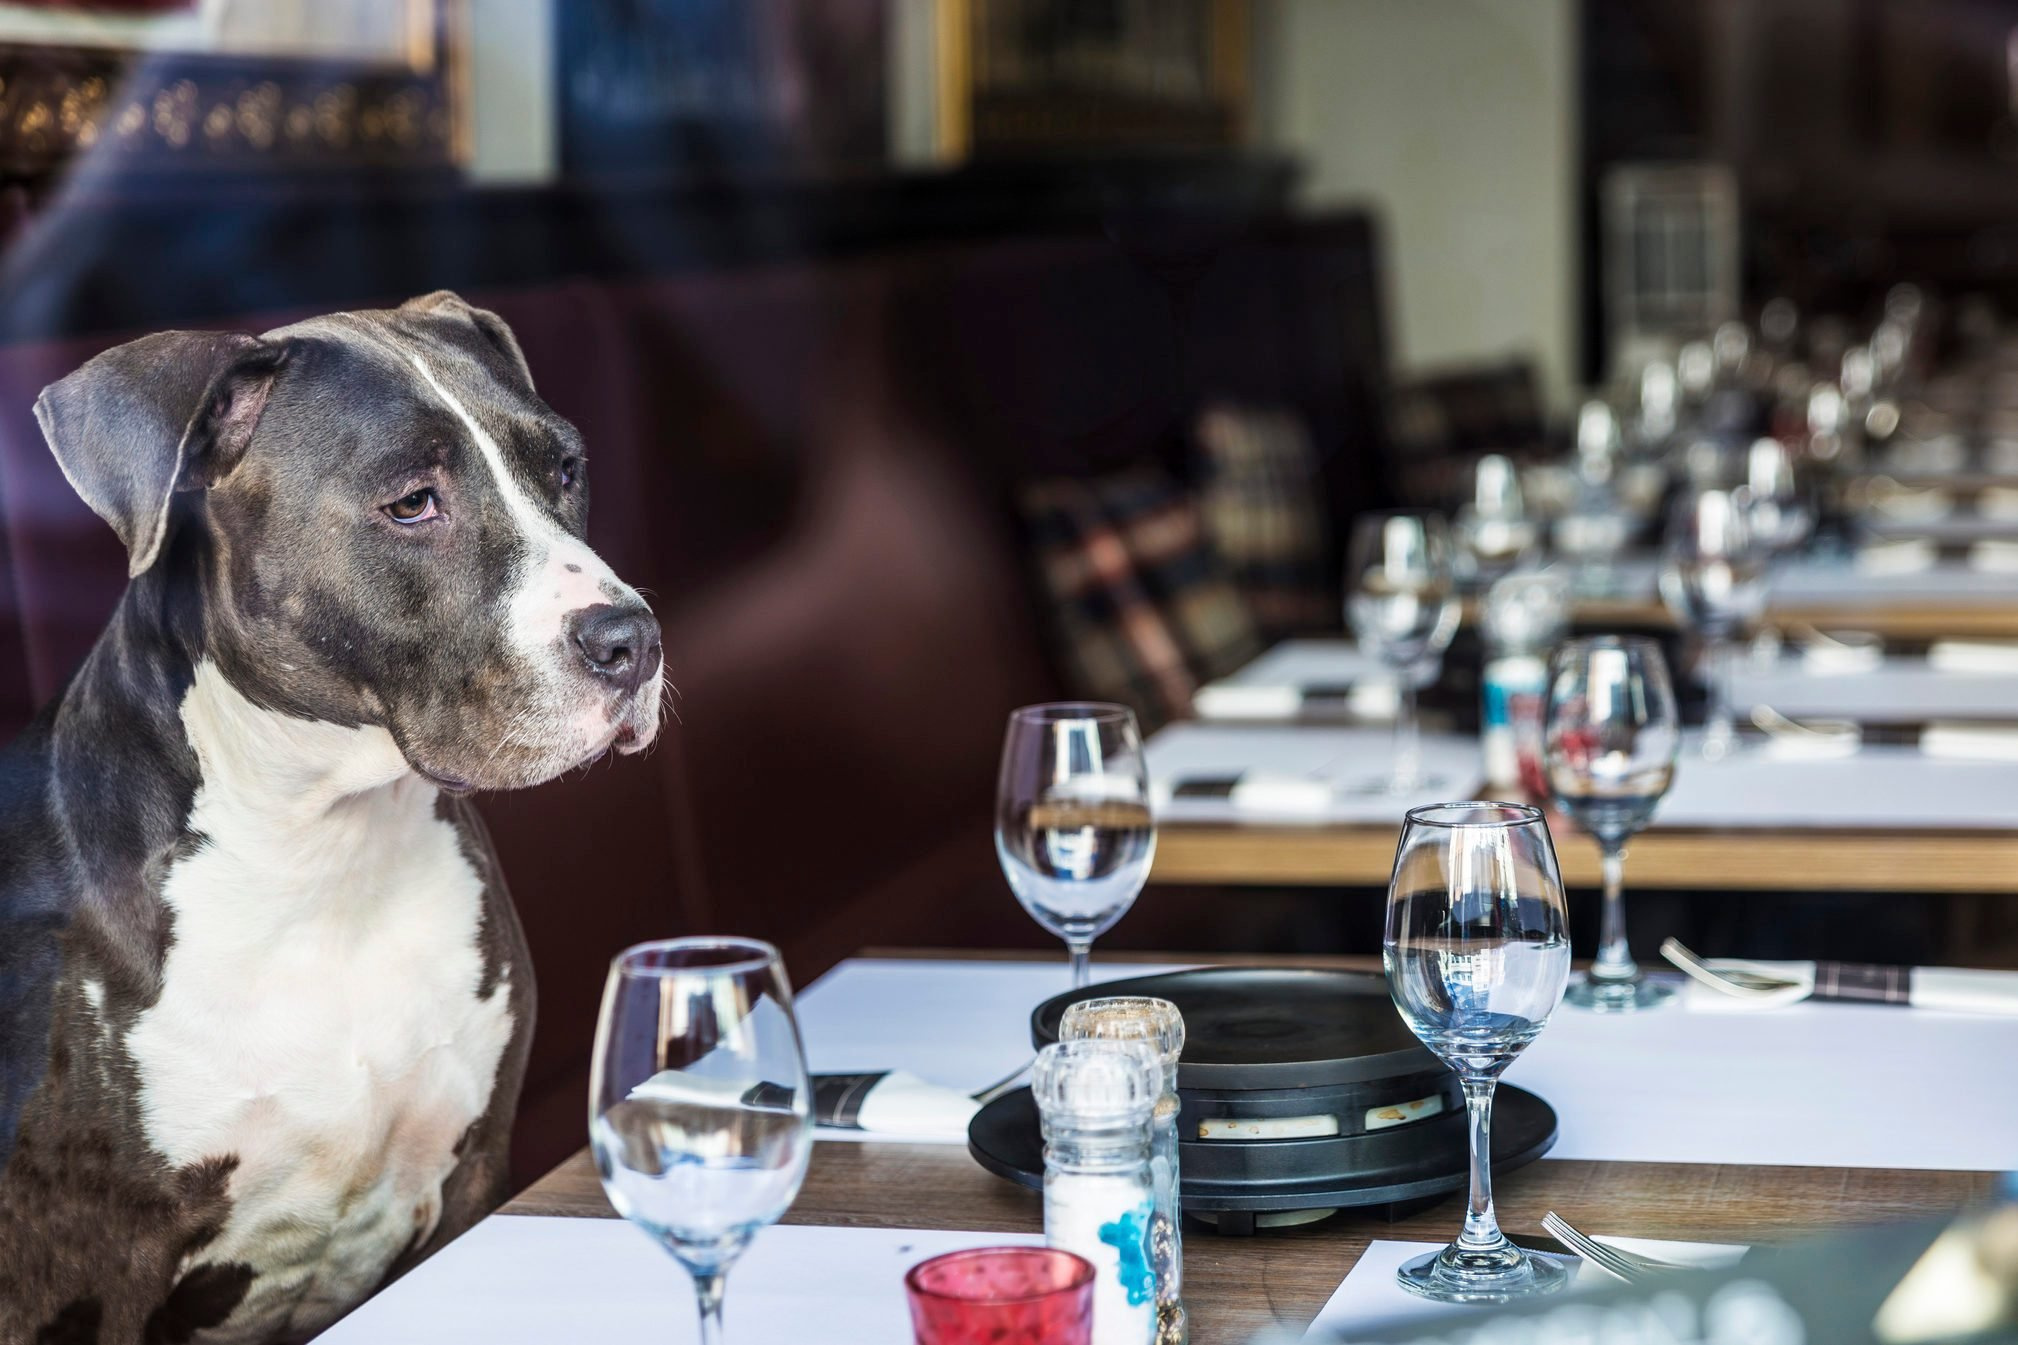 Dog sitting in a restaurant waiting to be attended